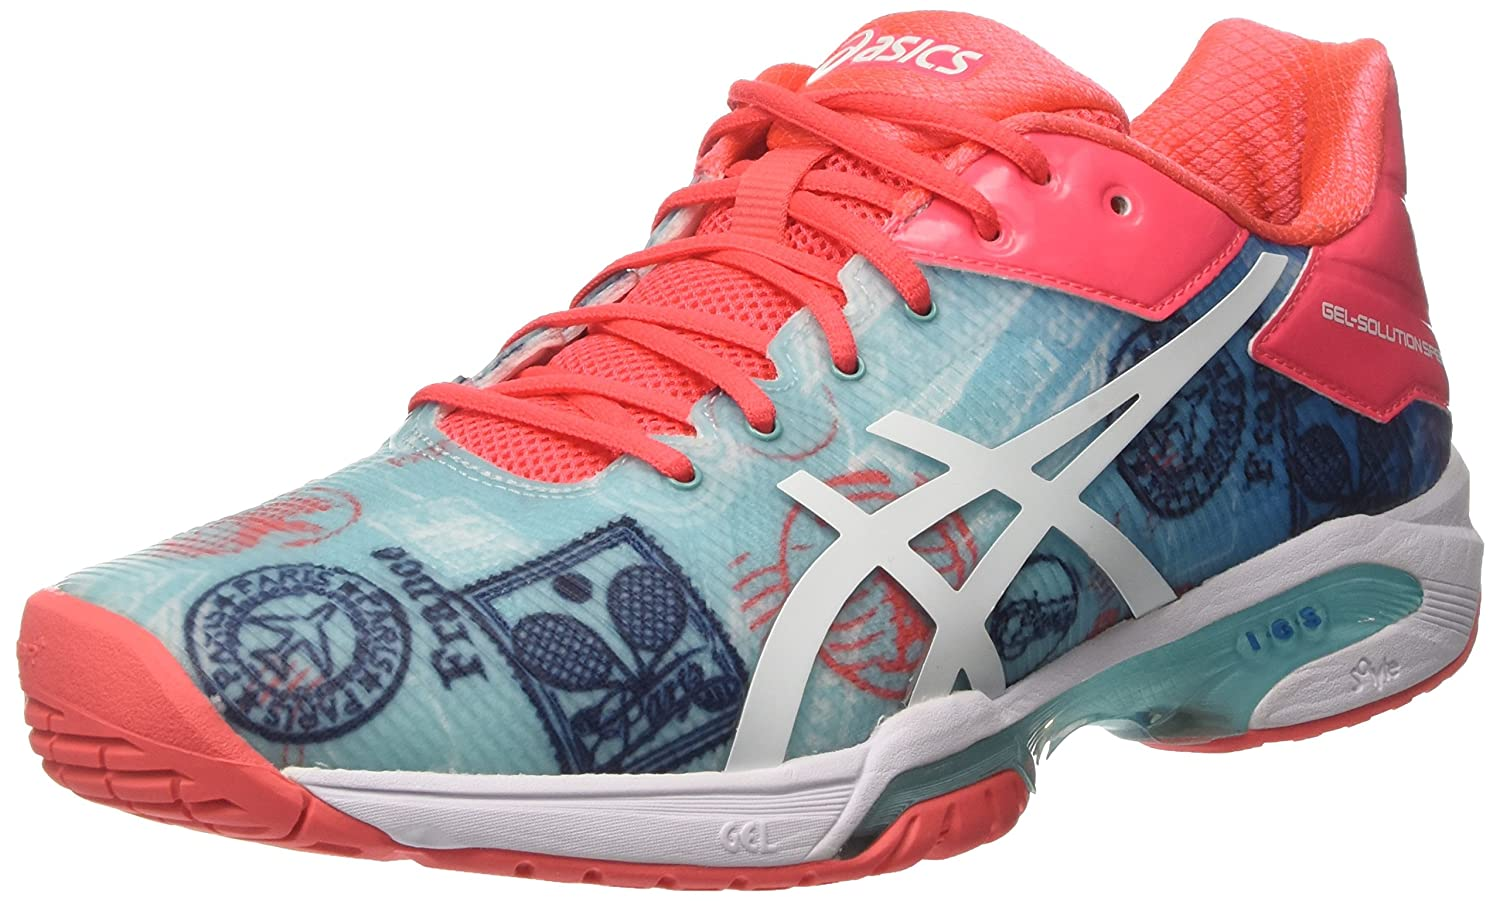 ASICS Gel-Solution Speed 3 L.E. Paris Womens Tennis Shoes E761N Sneakers Trainers